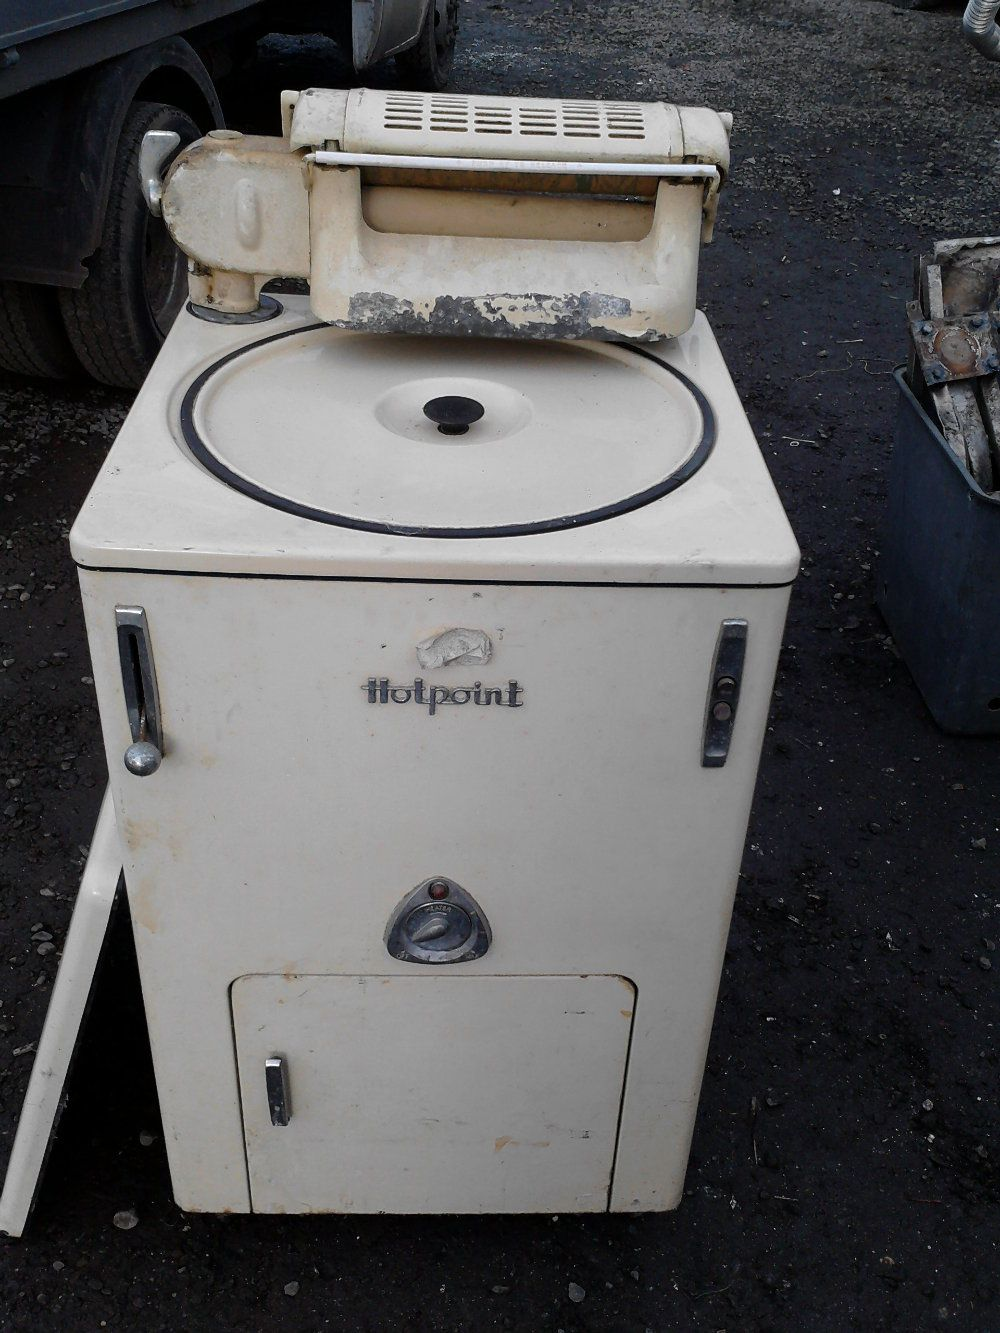 Discuss O Mat Thread Vintage Hotpoint 1950s Washing